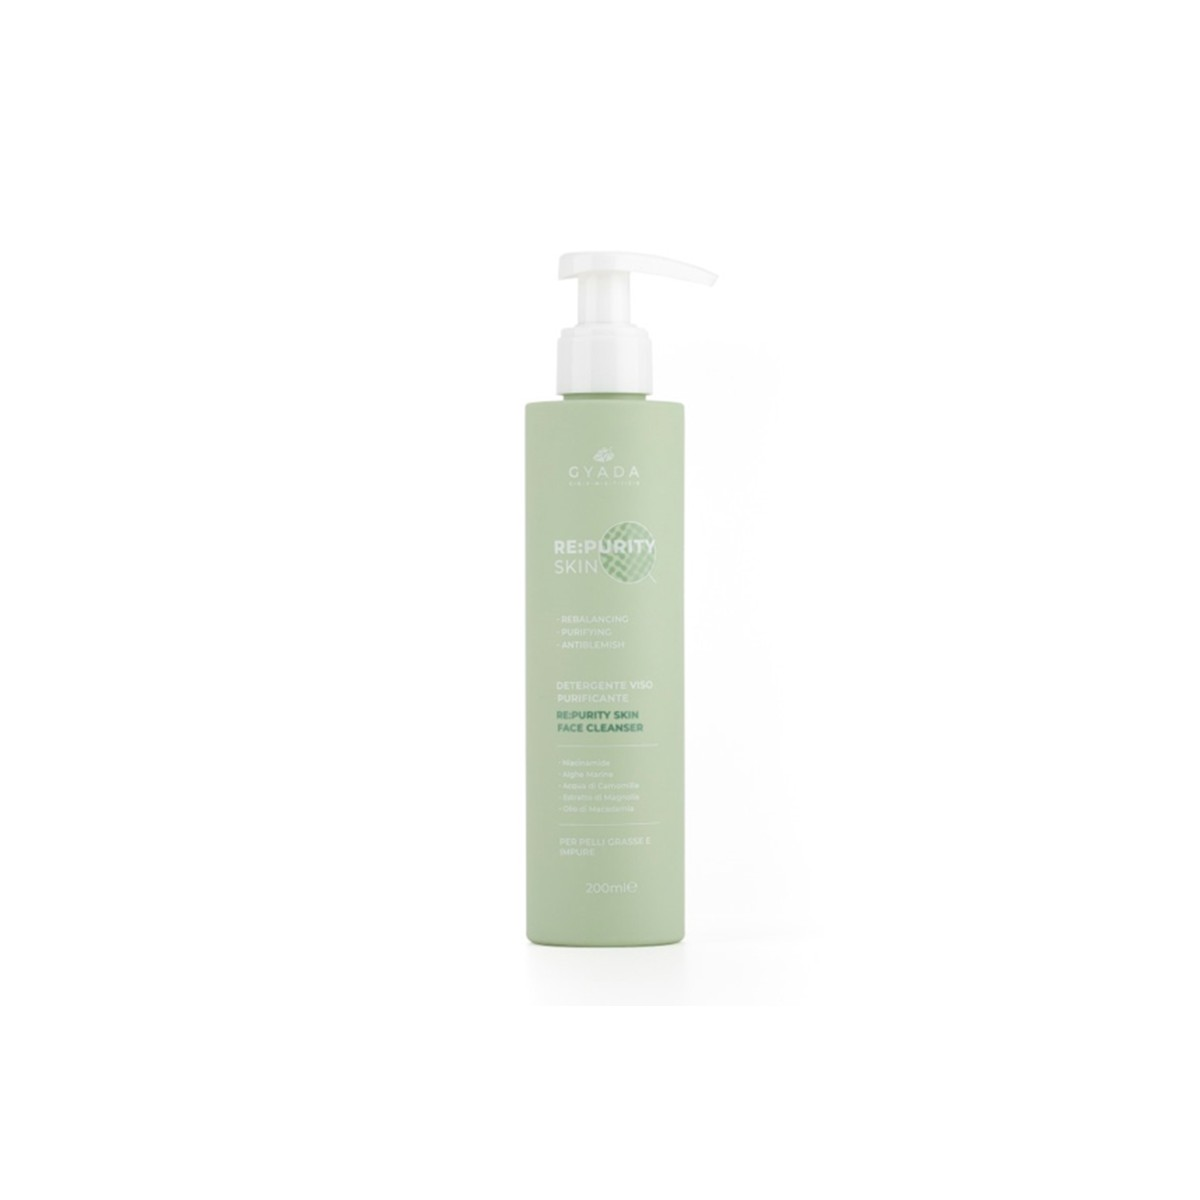 Re:Purity Skin Face Cleanser